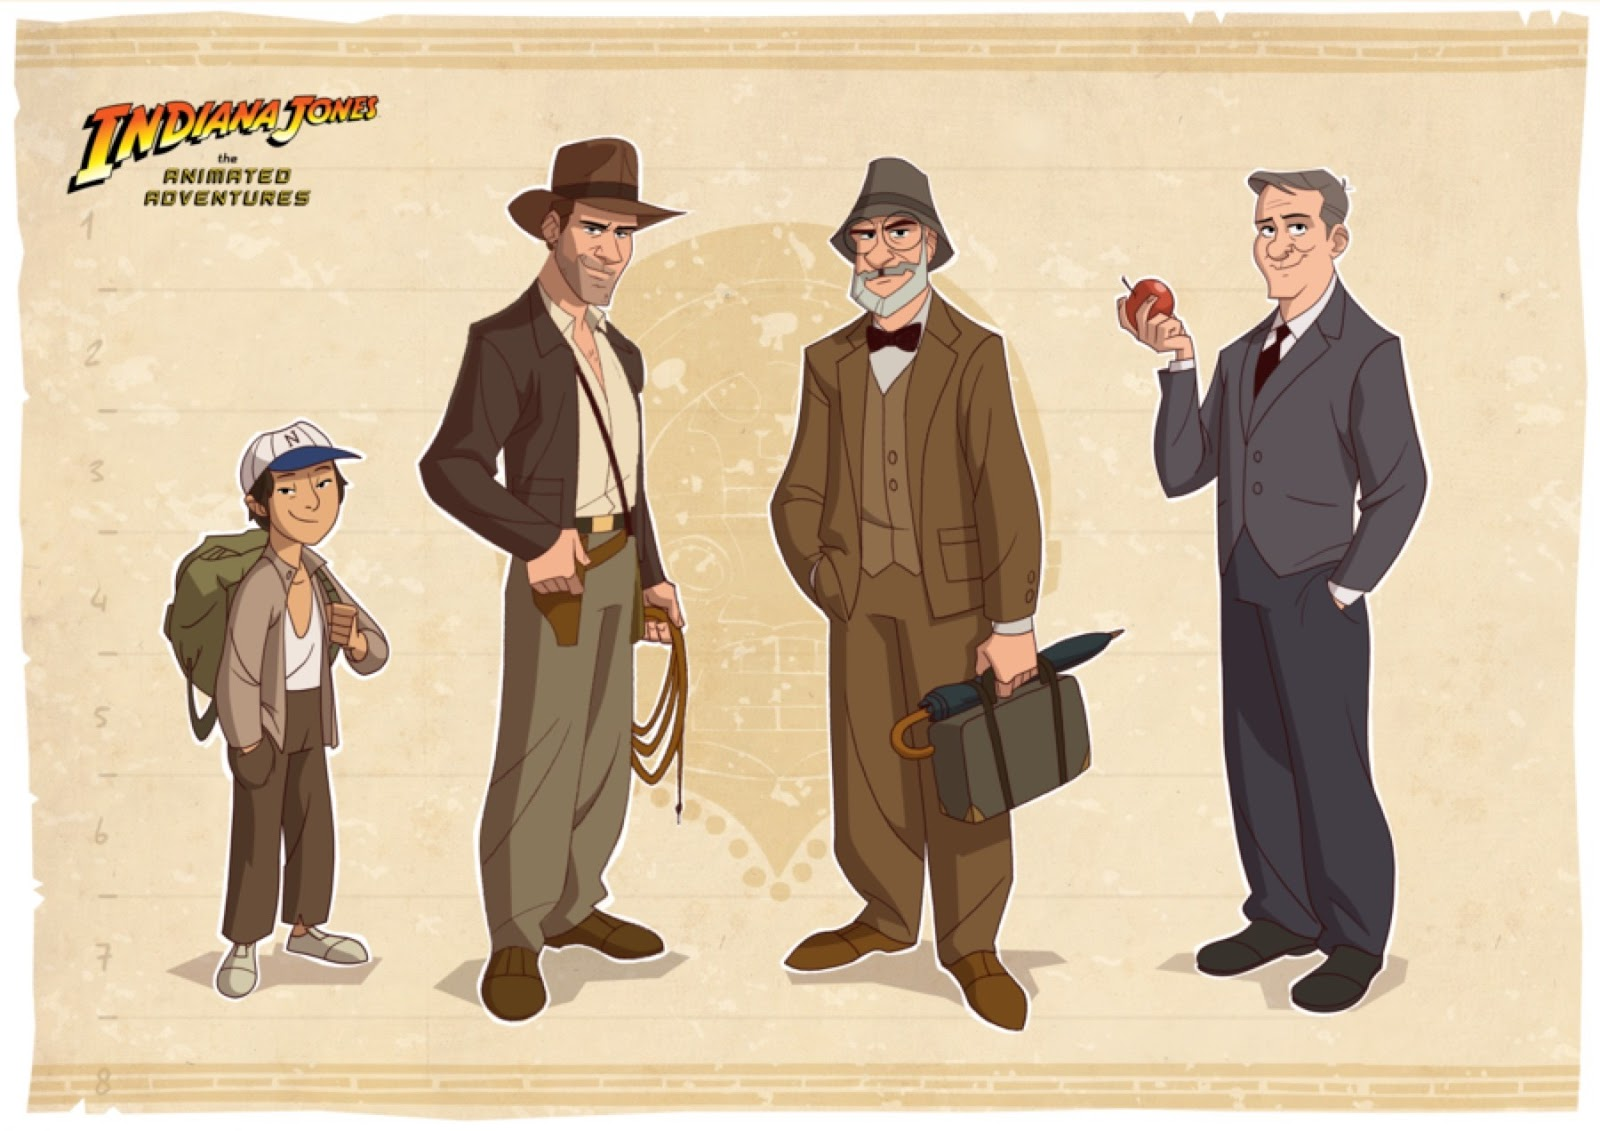 the_adventures_of_indiana_jones-6